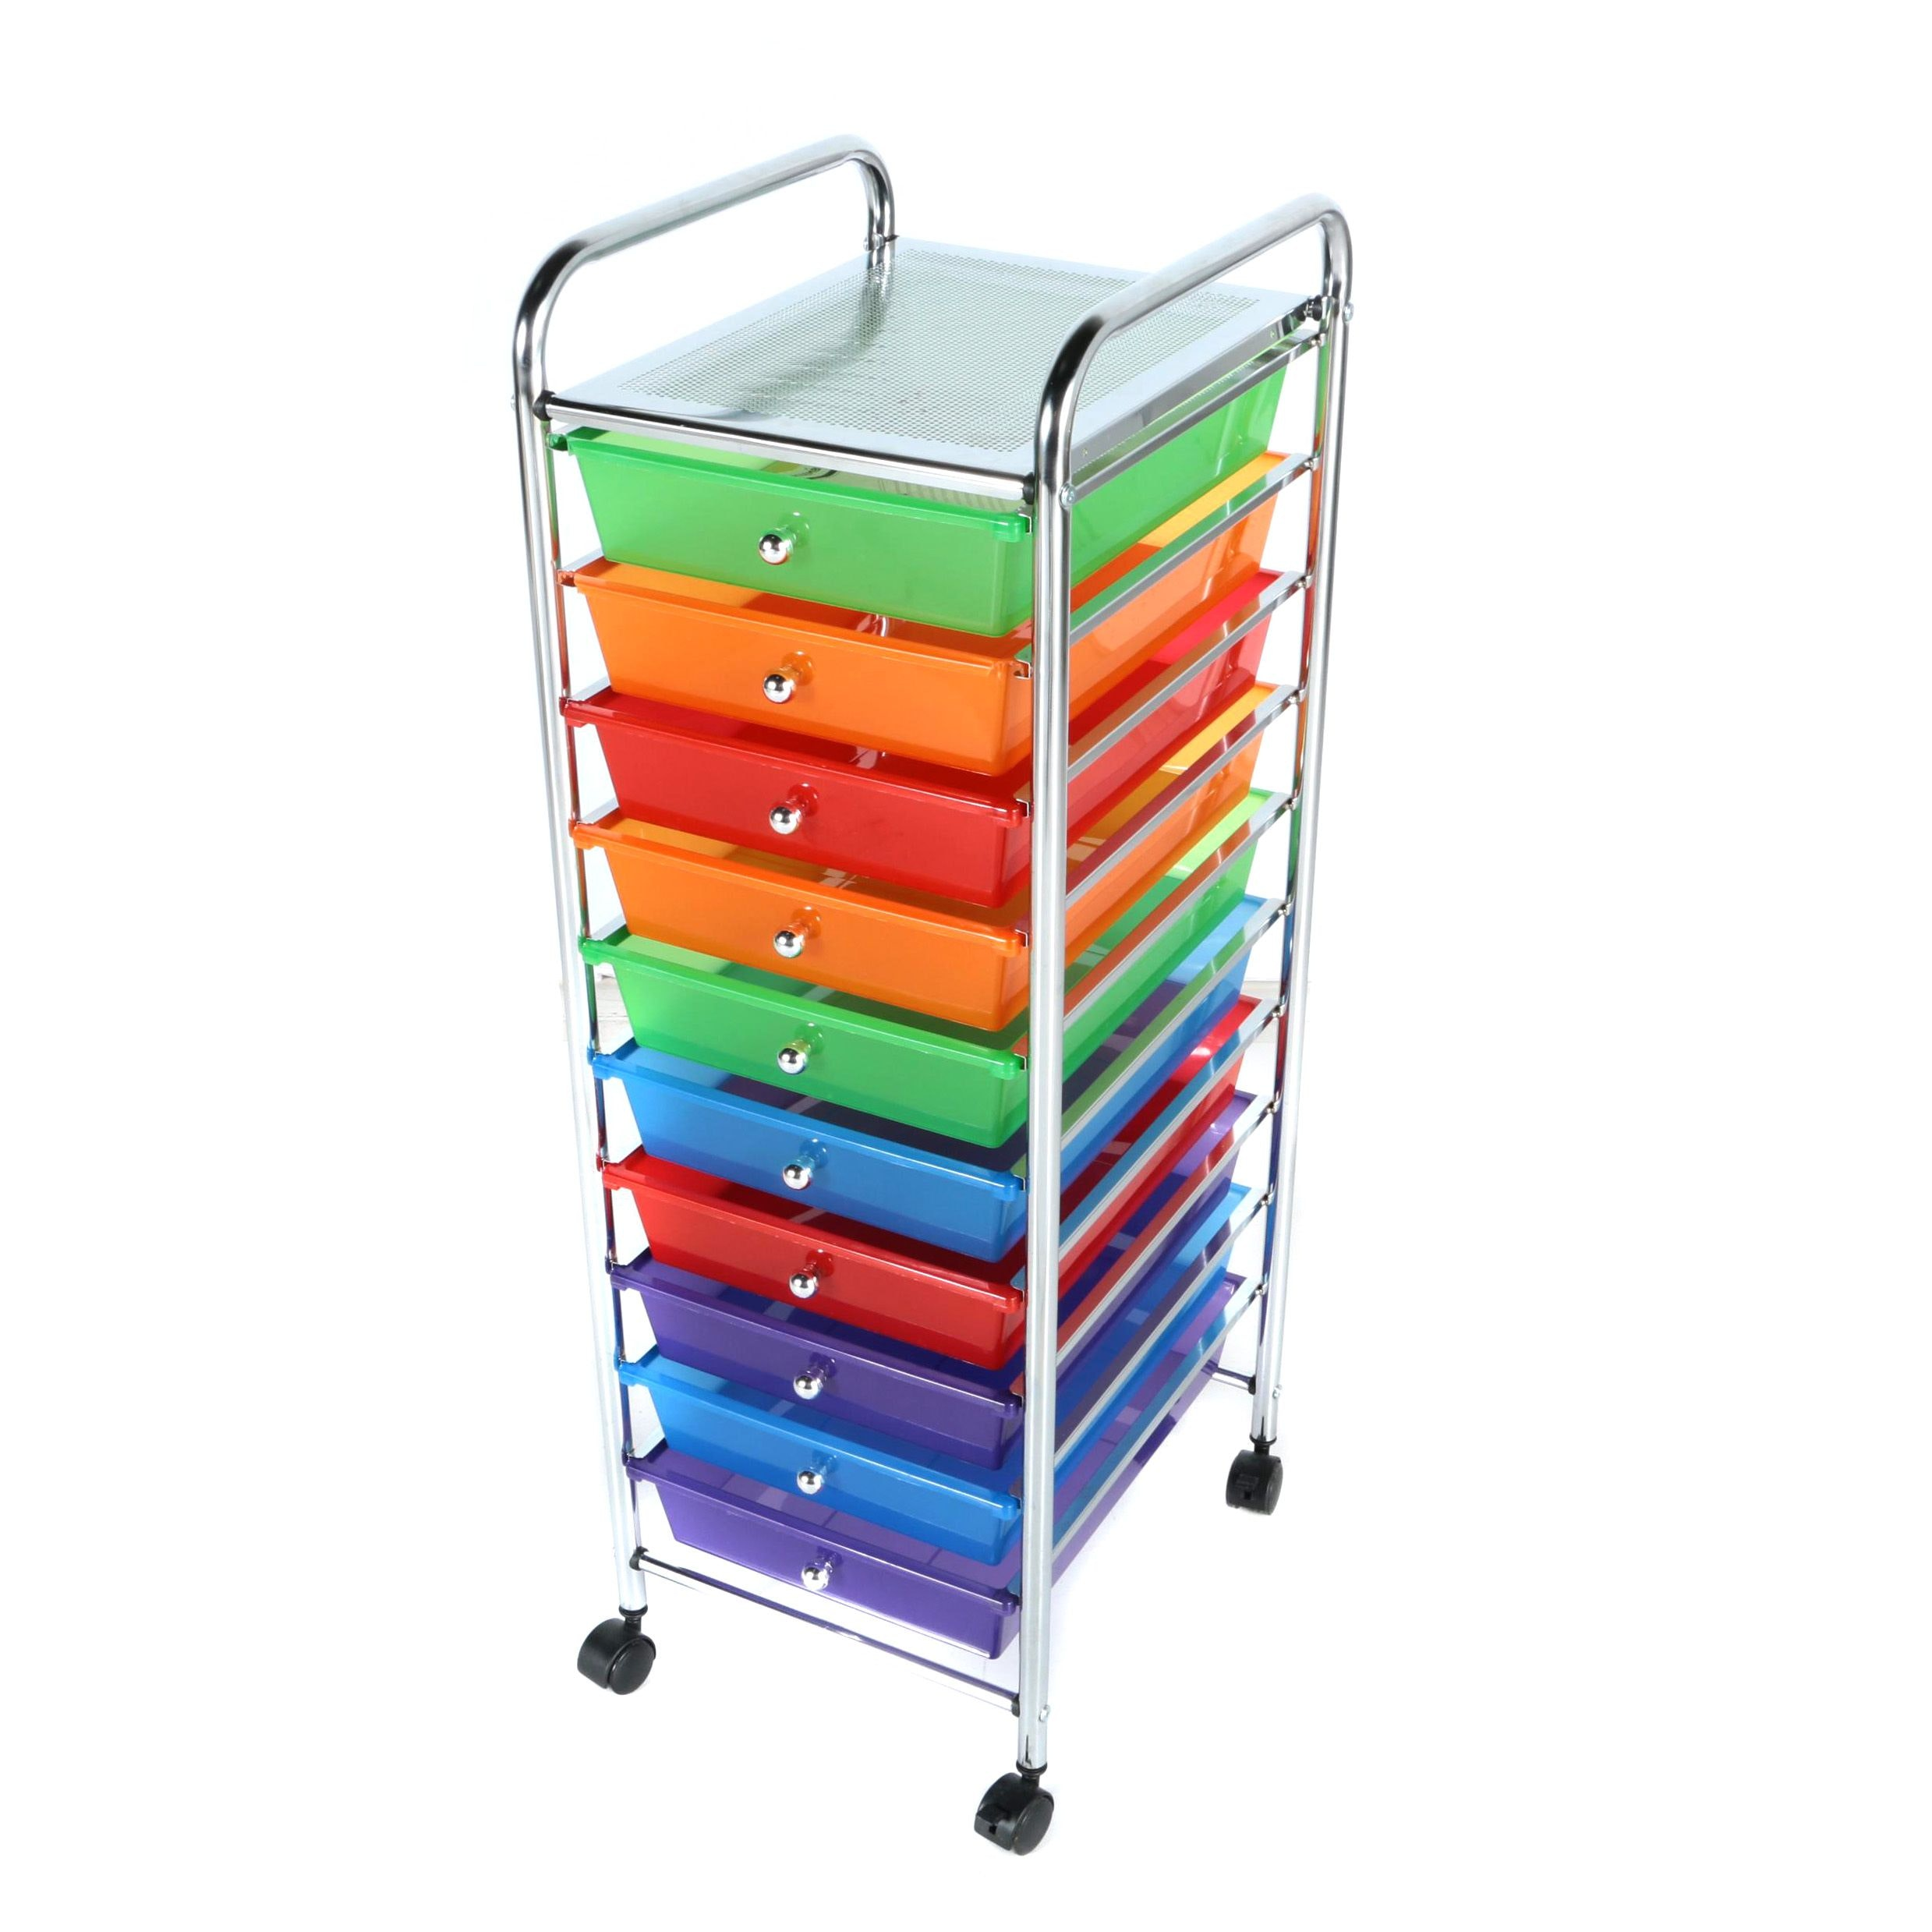 Colorful Storage Drawers on Wheels ...  sc 1 st  EBTH.com & Colorful Storage Drawers on Wheels : EBTH